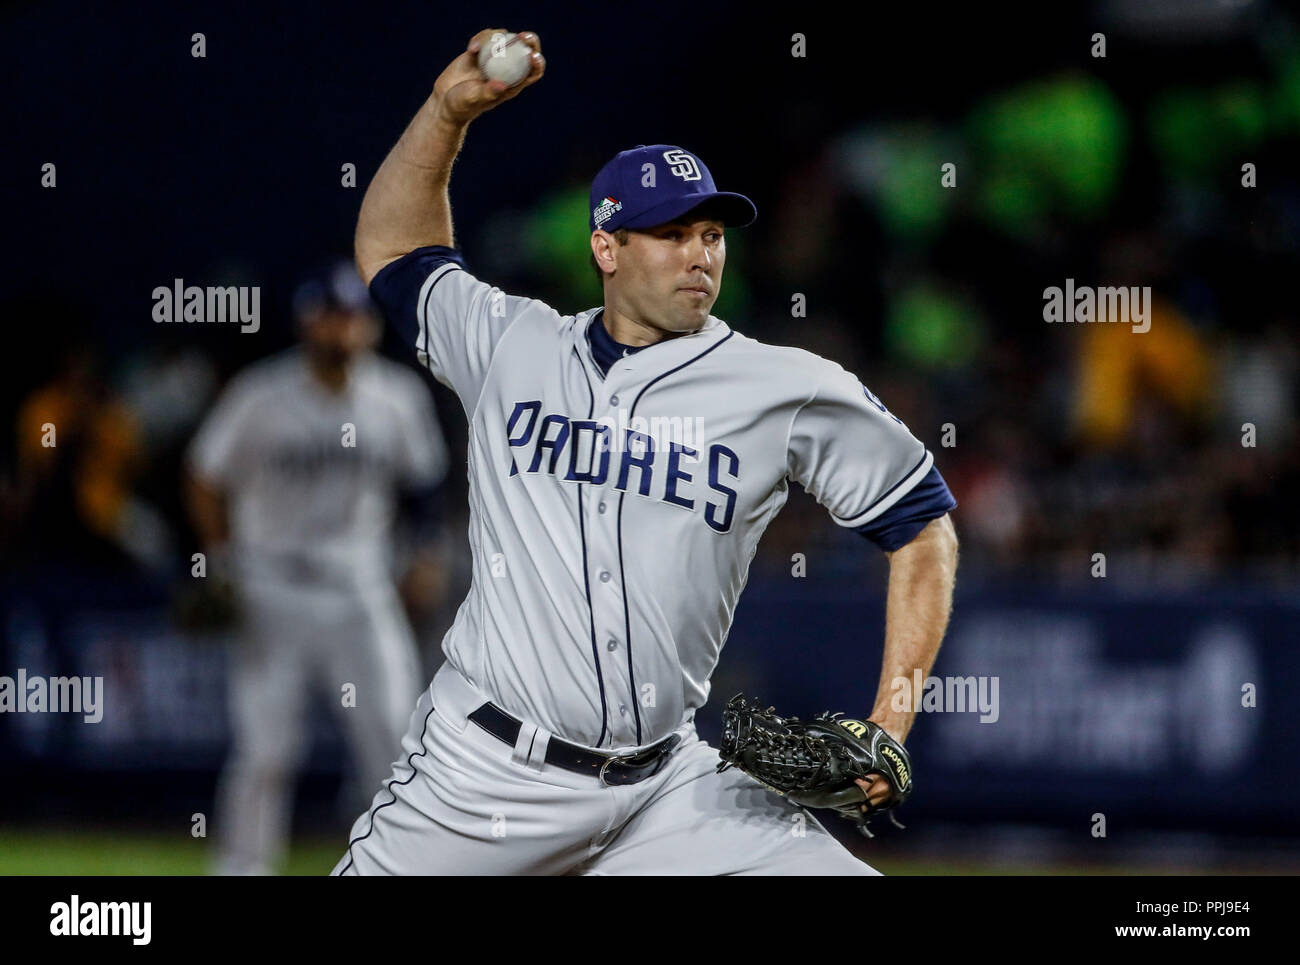 Baseball action during the Los Angeles Dodgers game against San Diego Padres, the second game of the Major League Baseball Series in Mexico, held at t - Stock Image